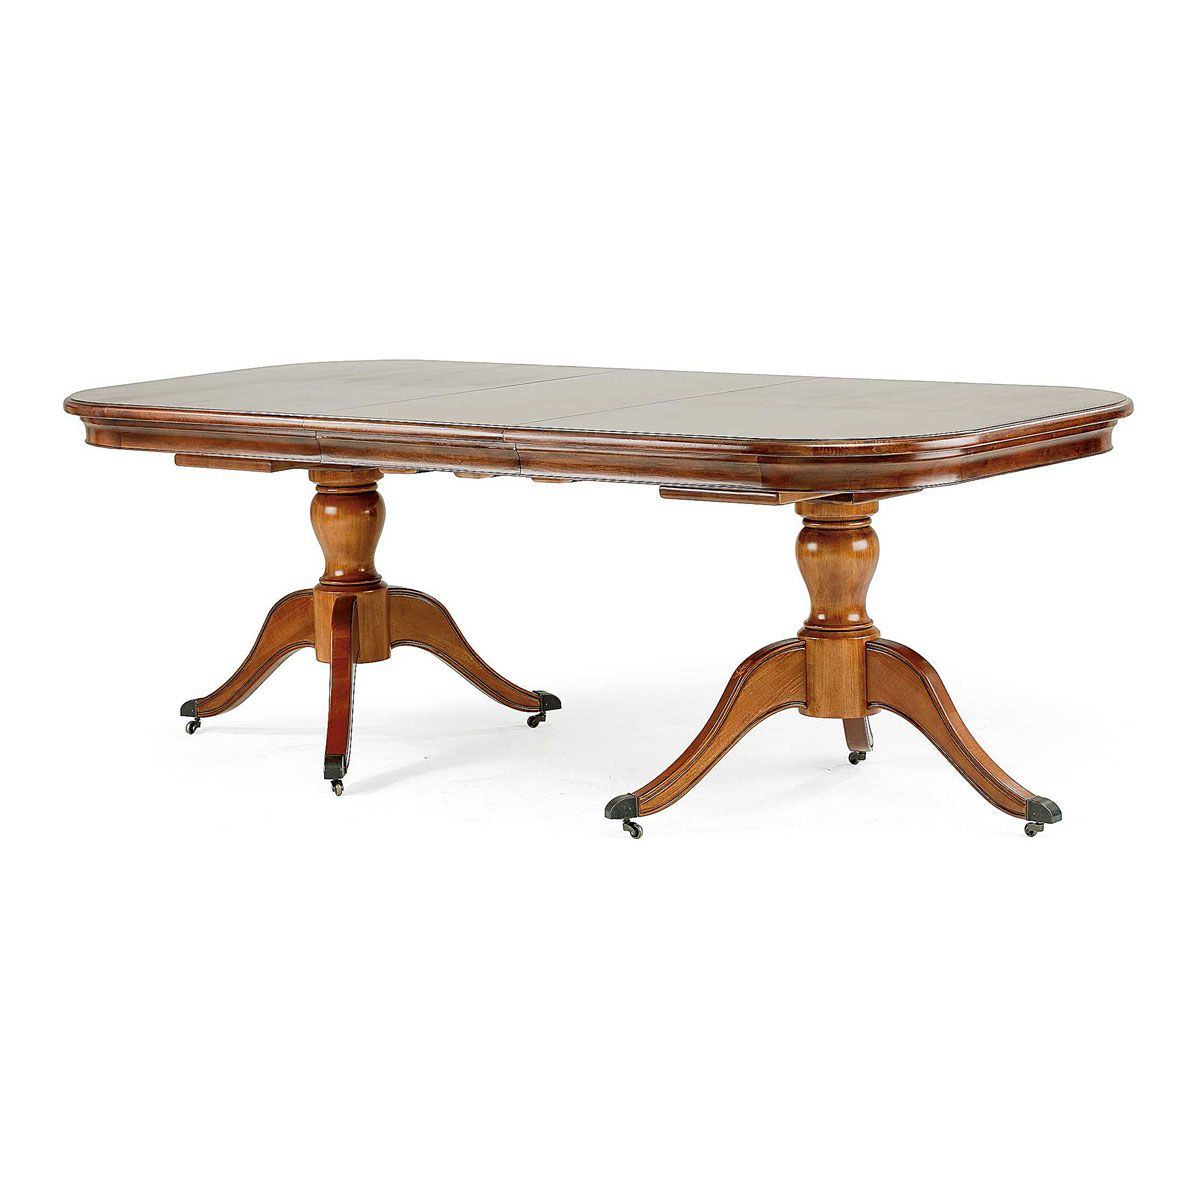 Lille 8-10 Seater Pedestal Table